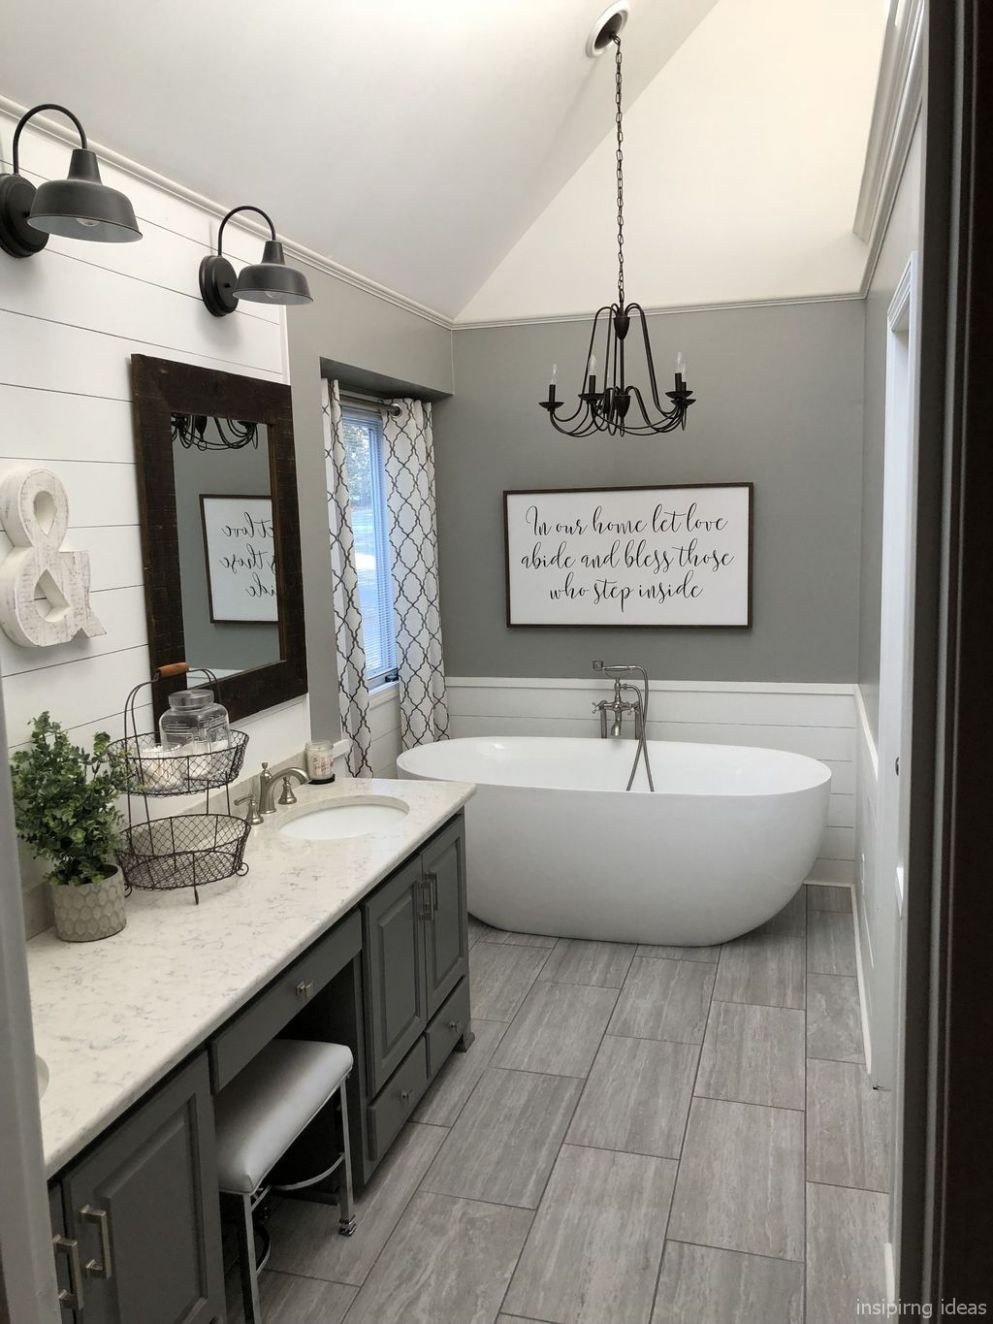 Pin by Amber Walker on Bathroom Ideas | Modern farmhouse bathroom ..